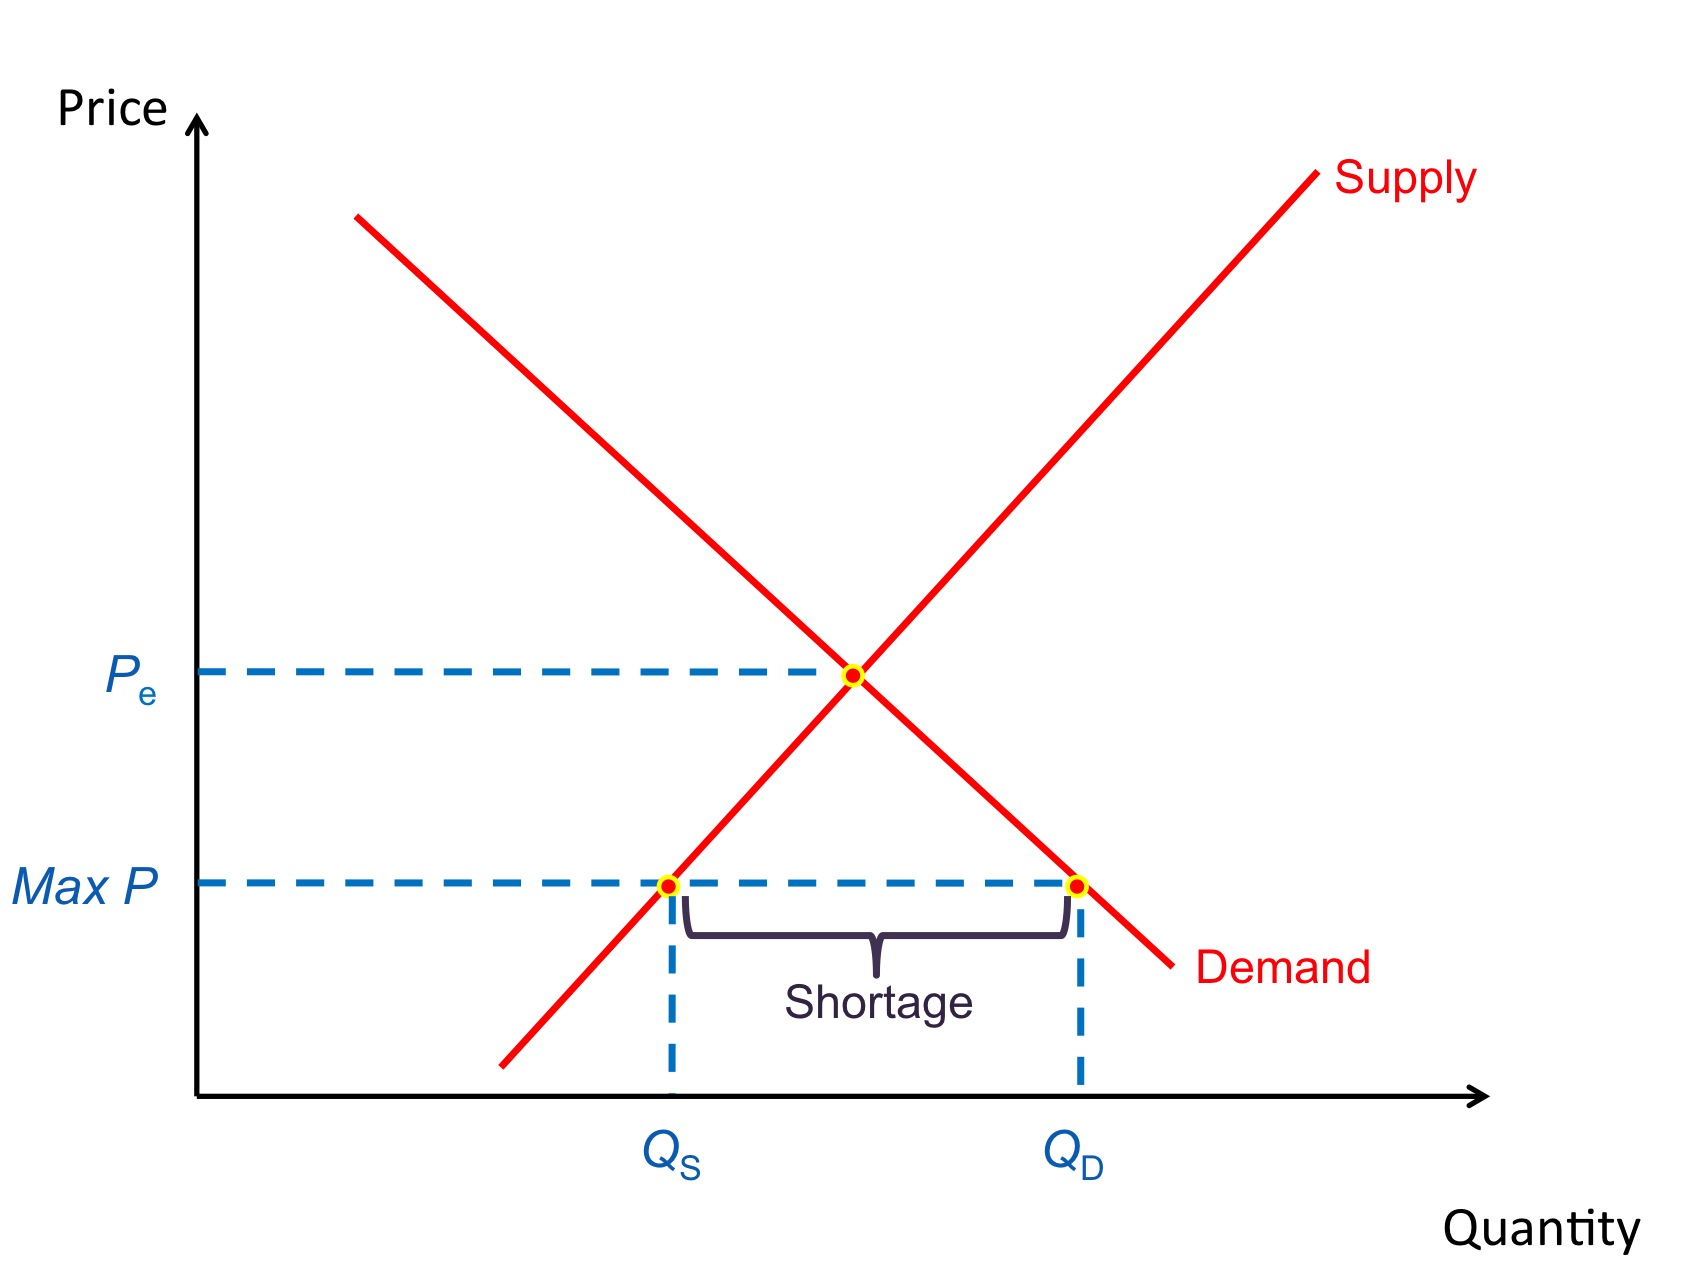 Setting A Maximum Price At Max P Will Cause Shortage Excess Demand Equal To QD QS